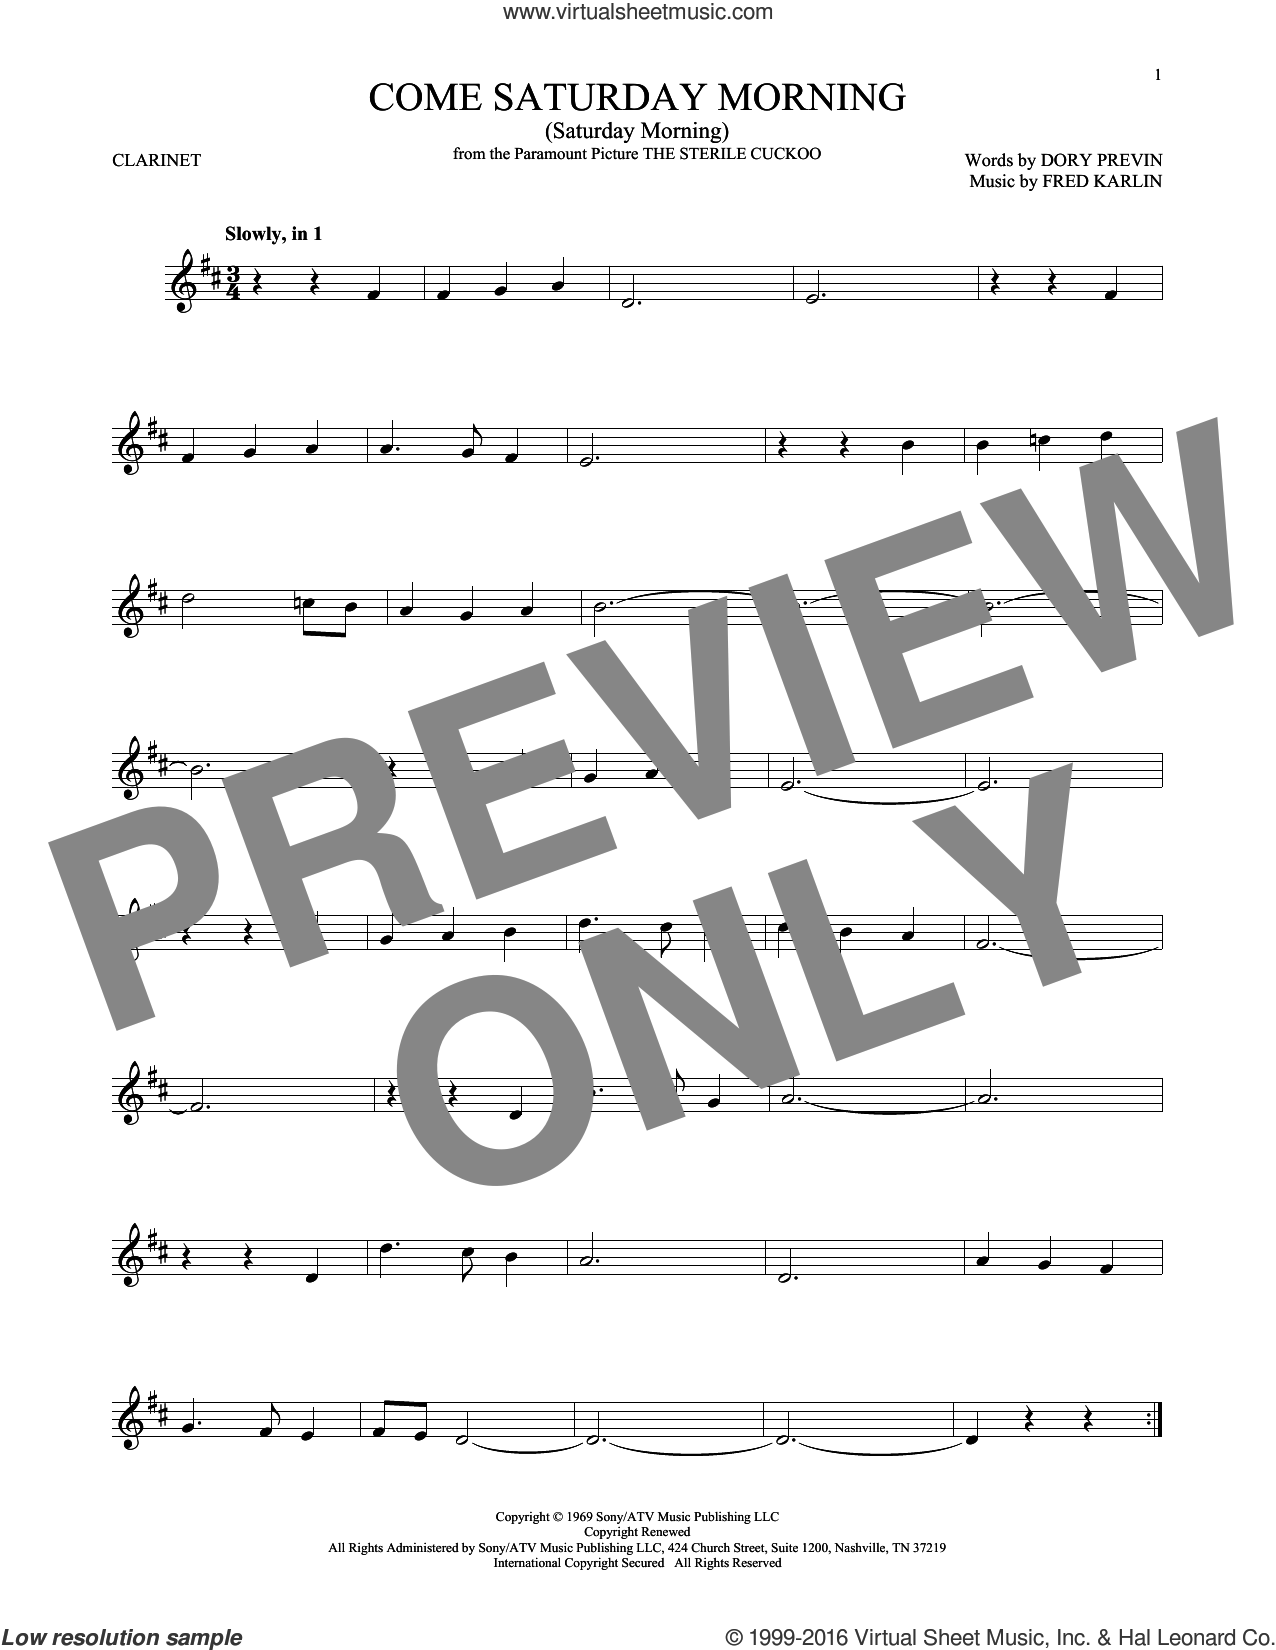 Come Saturday Morning (Saturday Morning) sheet music for clarinet solo by Dory Previn and Fred Karlin, intermediate skill level